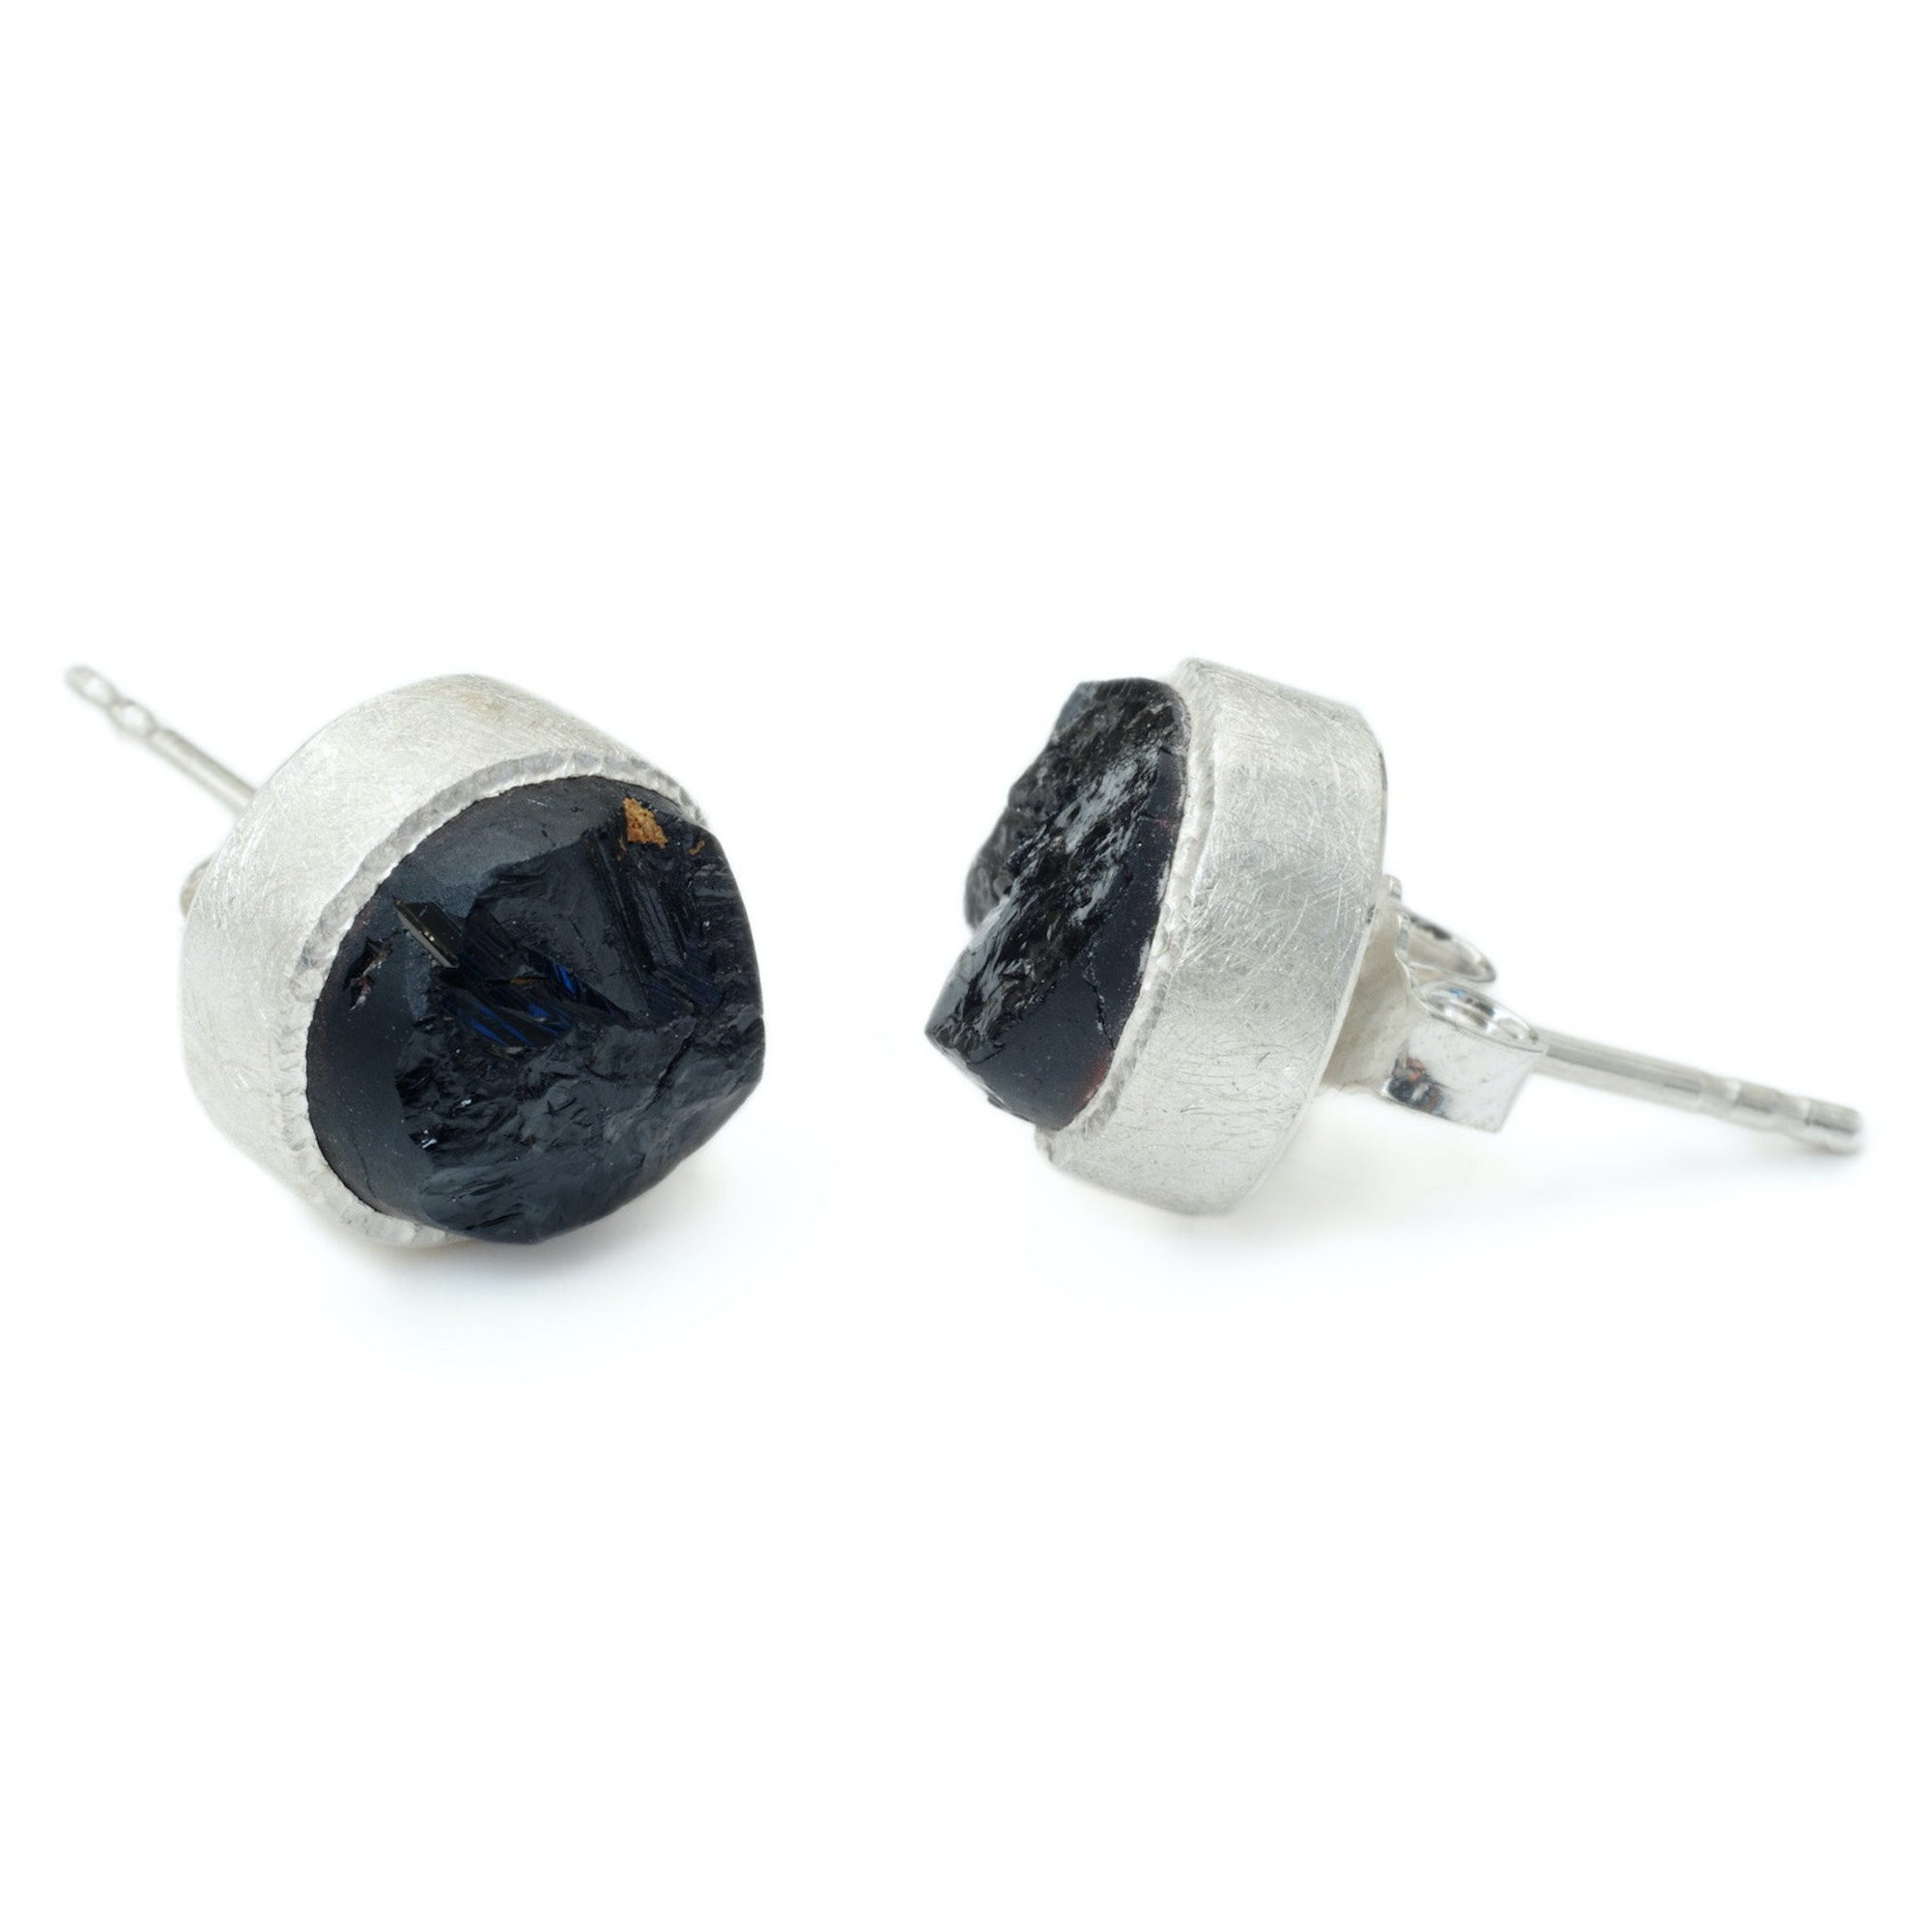 'Dark Horse' Black Tourmaline Raw Studs